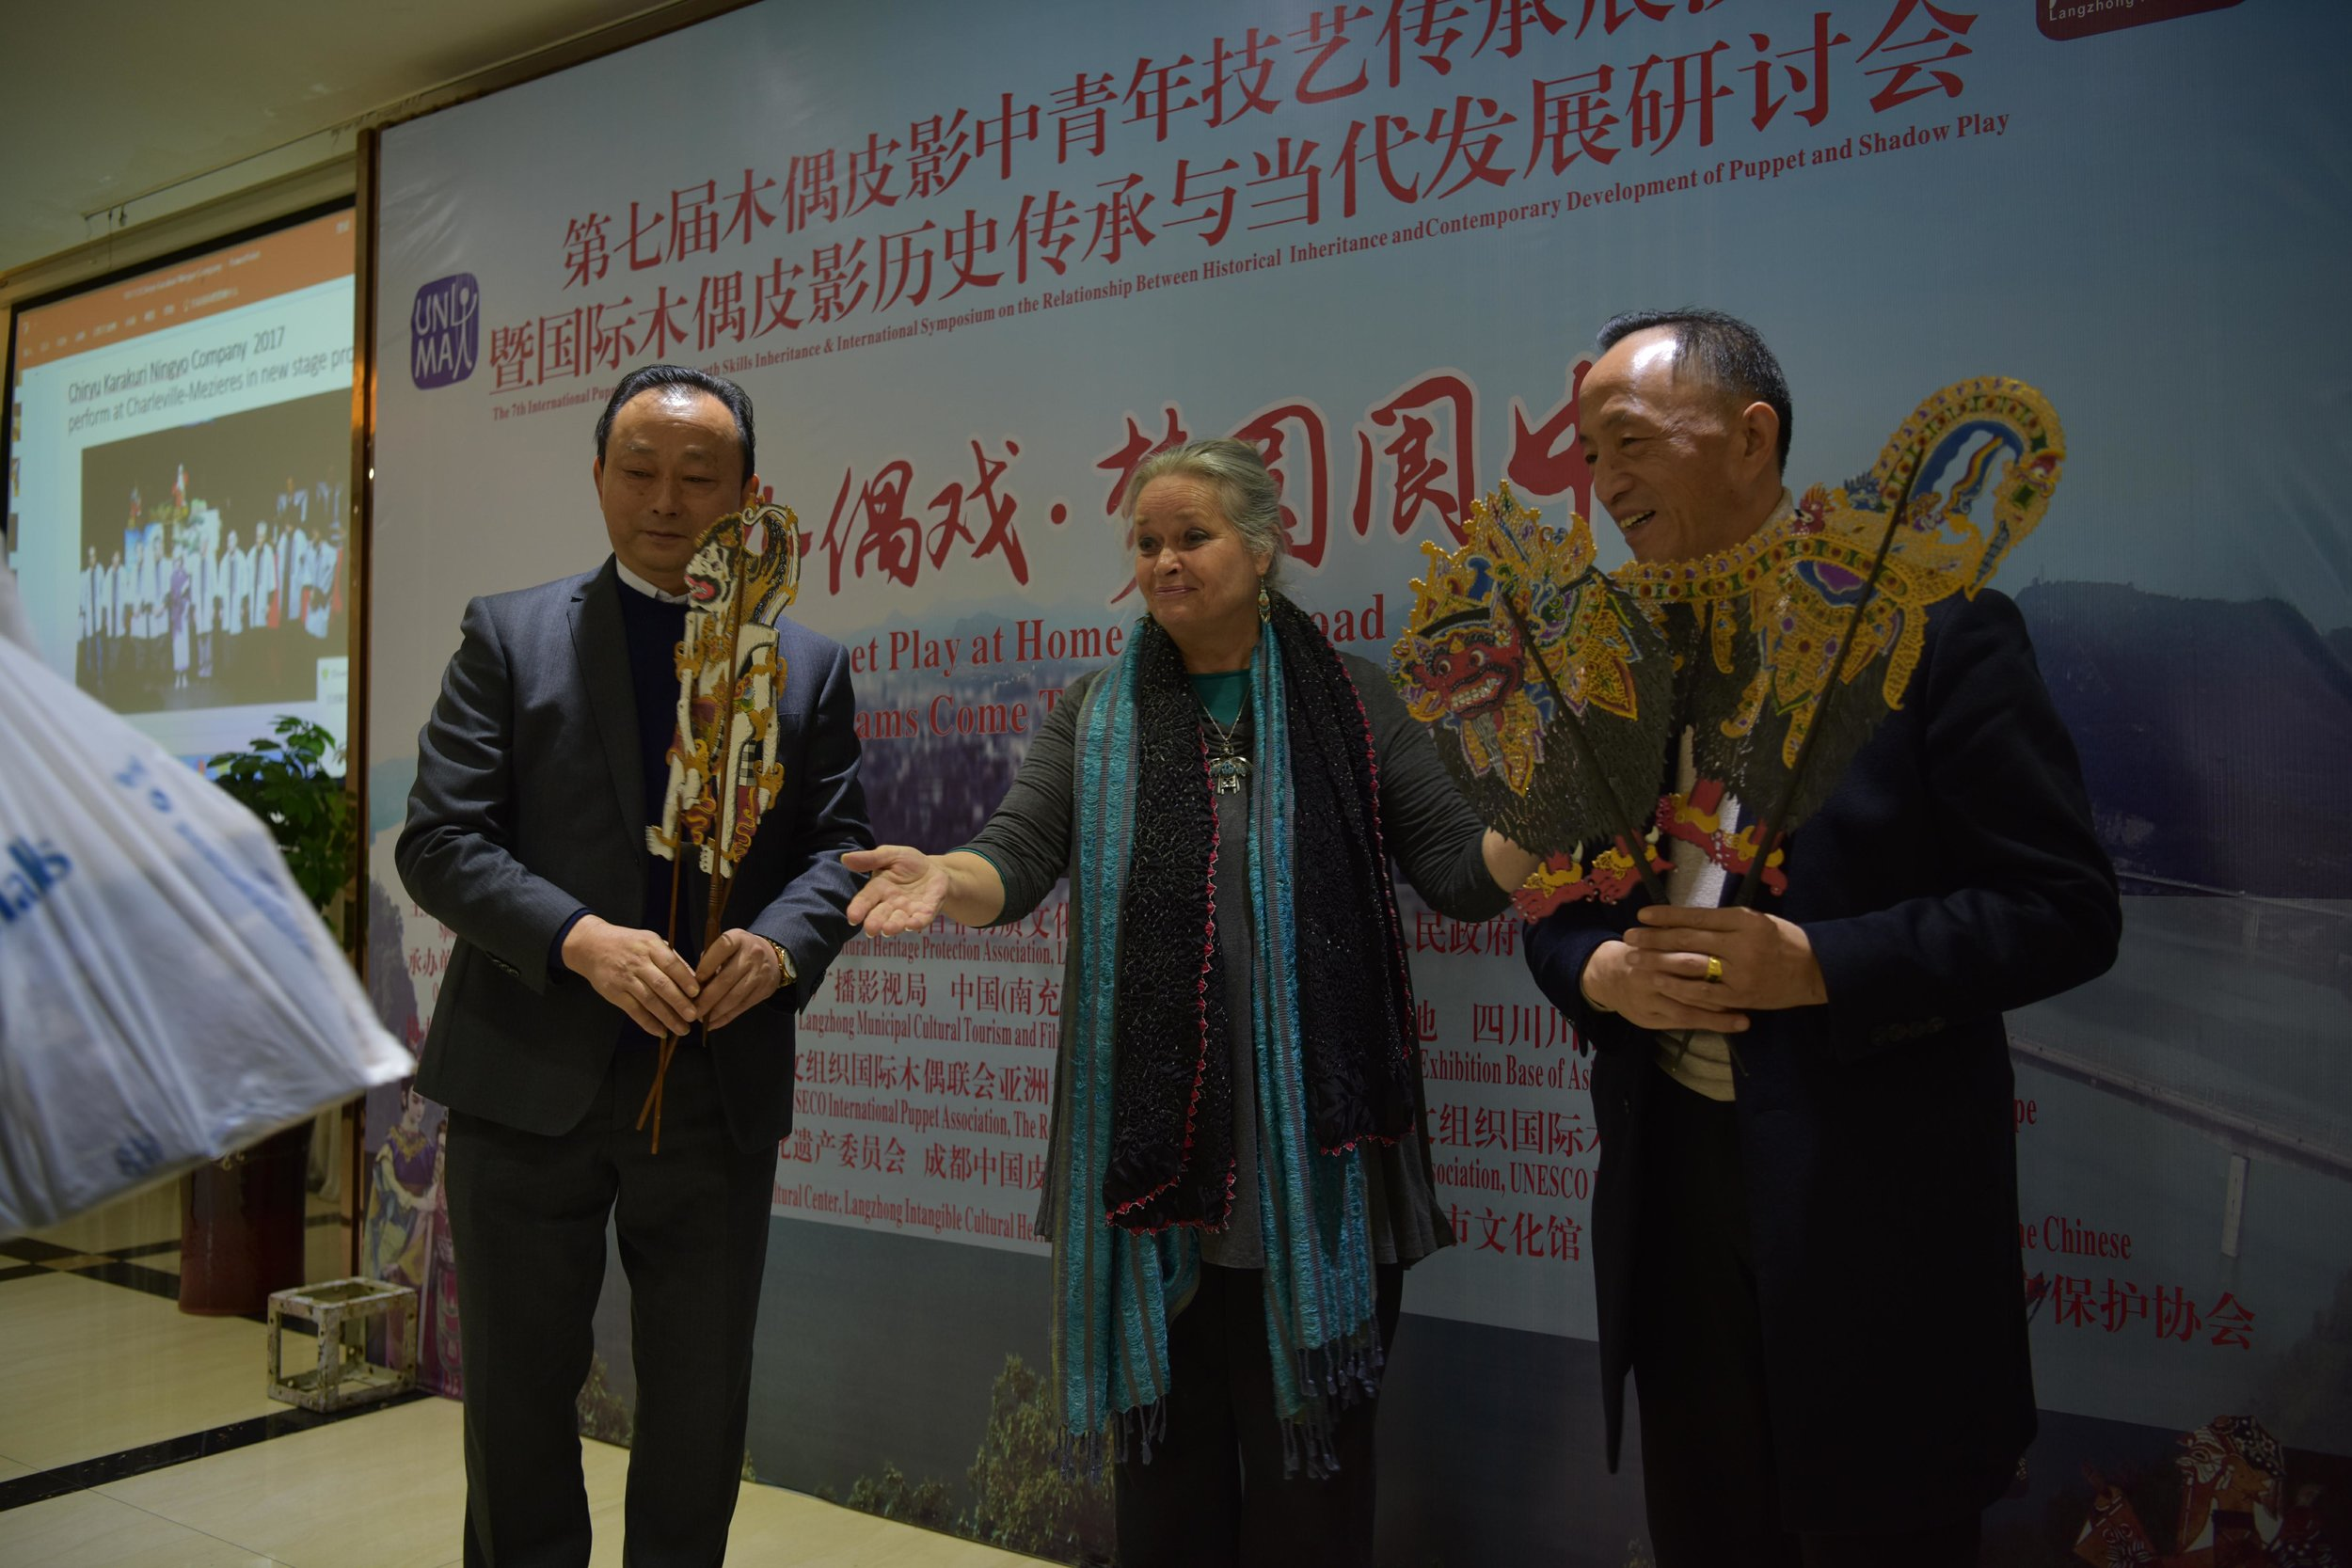 Photo courtesy of UNIMA CHINA. (Left to Right): After introducing the 2020 Bali Congress and World Puppetry Festival, Karen Smith presents two Balinese shadow puppets (Hanuman and Barong) to Wang Biao (Director, Sichuan Wang's Shadow Puppet Troupe) and Wang Fang (Sichuan Wang's Shadow Puppet Troupe).